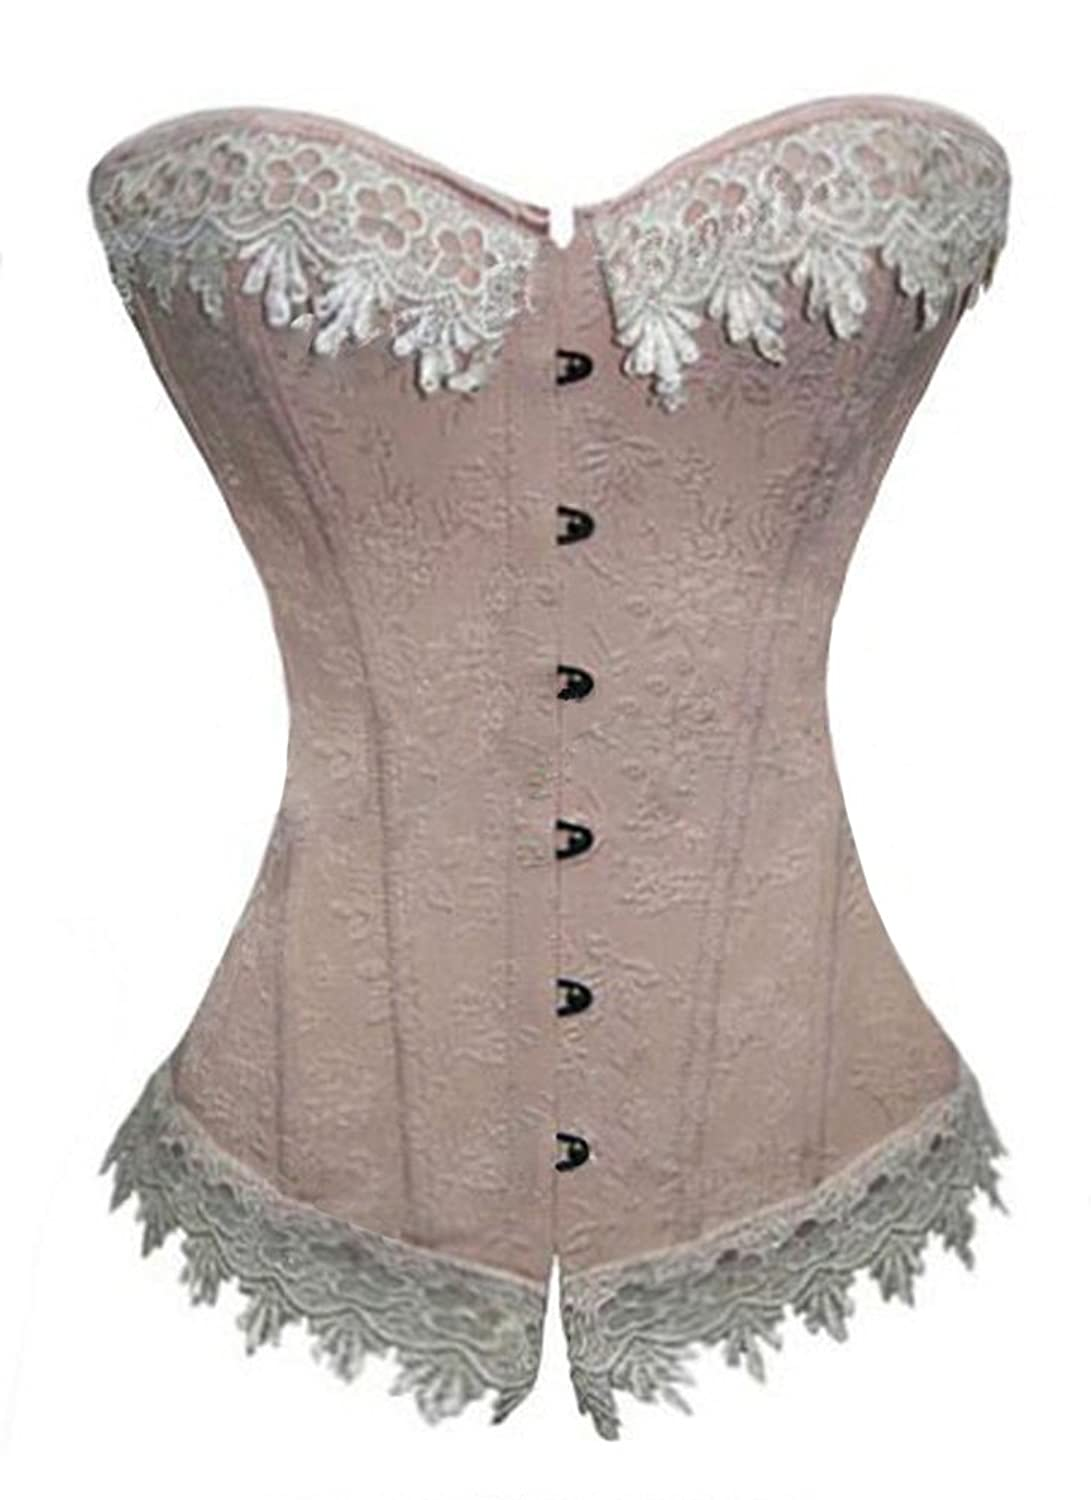 cc41c1580 Victorian Corsets - Old Fashioned Corsets   Patterns